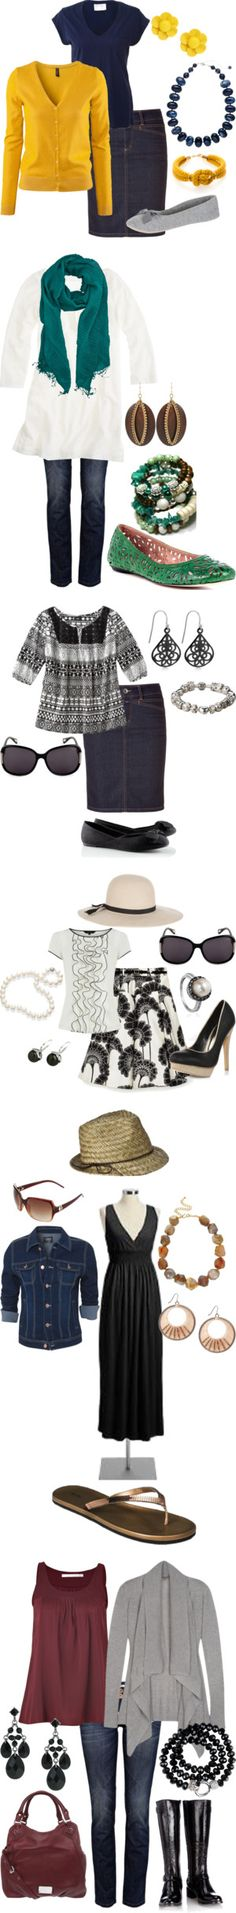 """""""Modesty Mondays"""" by coloradogrrl21 on Polyvore I some of the outfits will be cute with jean skirts"""